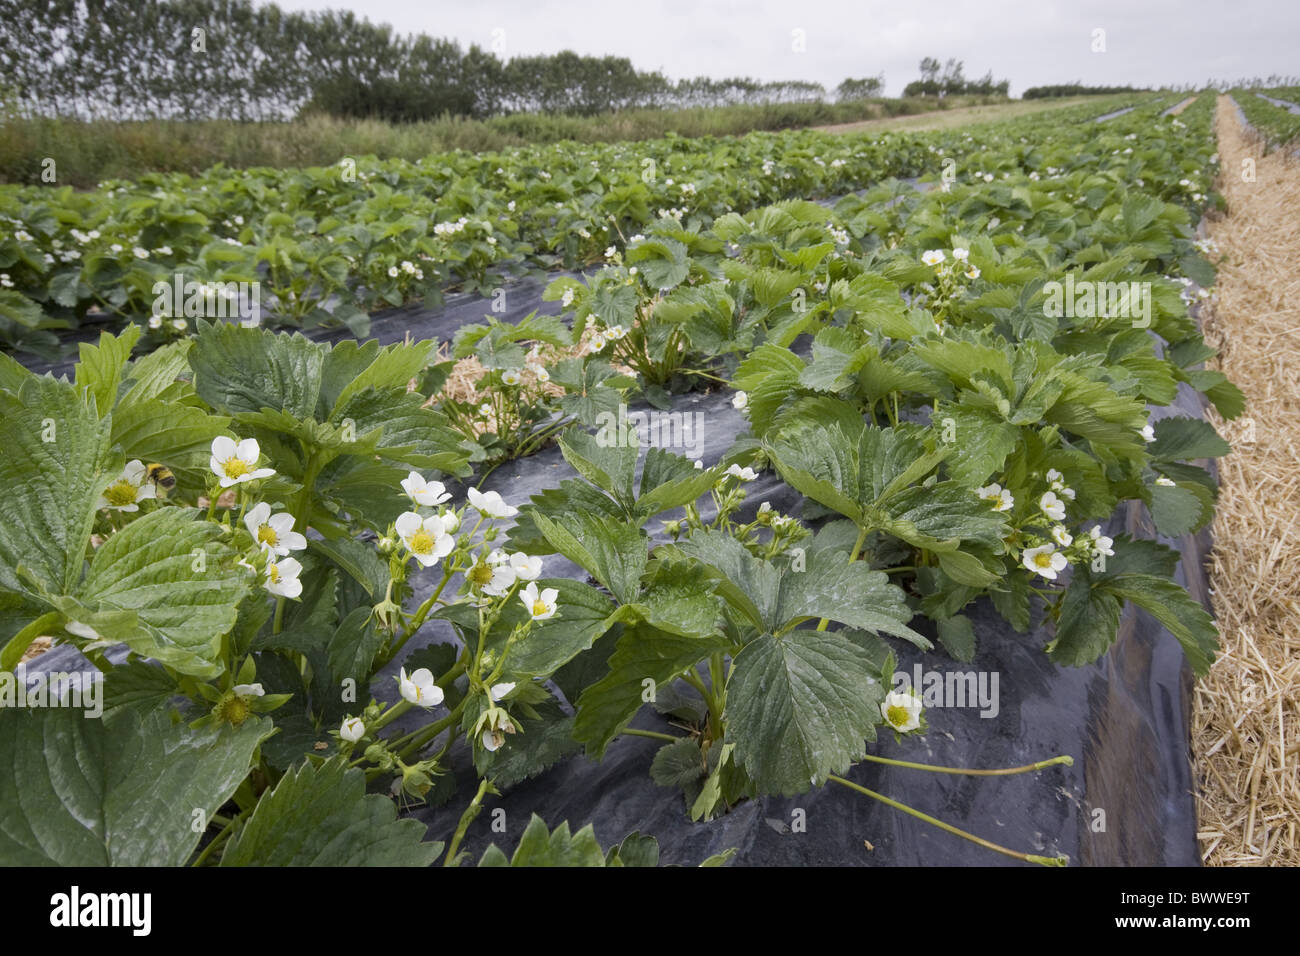 Strawberry Plants Covered Stock Photos & Strawberry Plants Covered ...